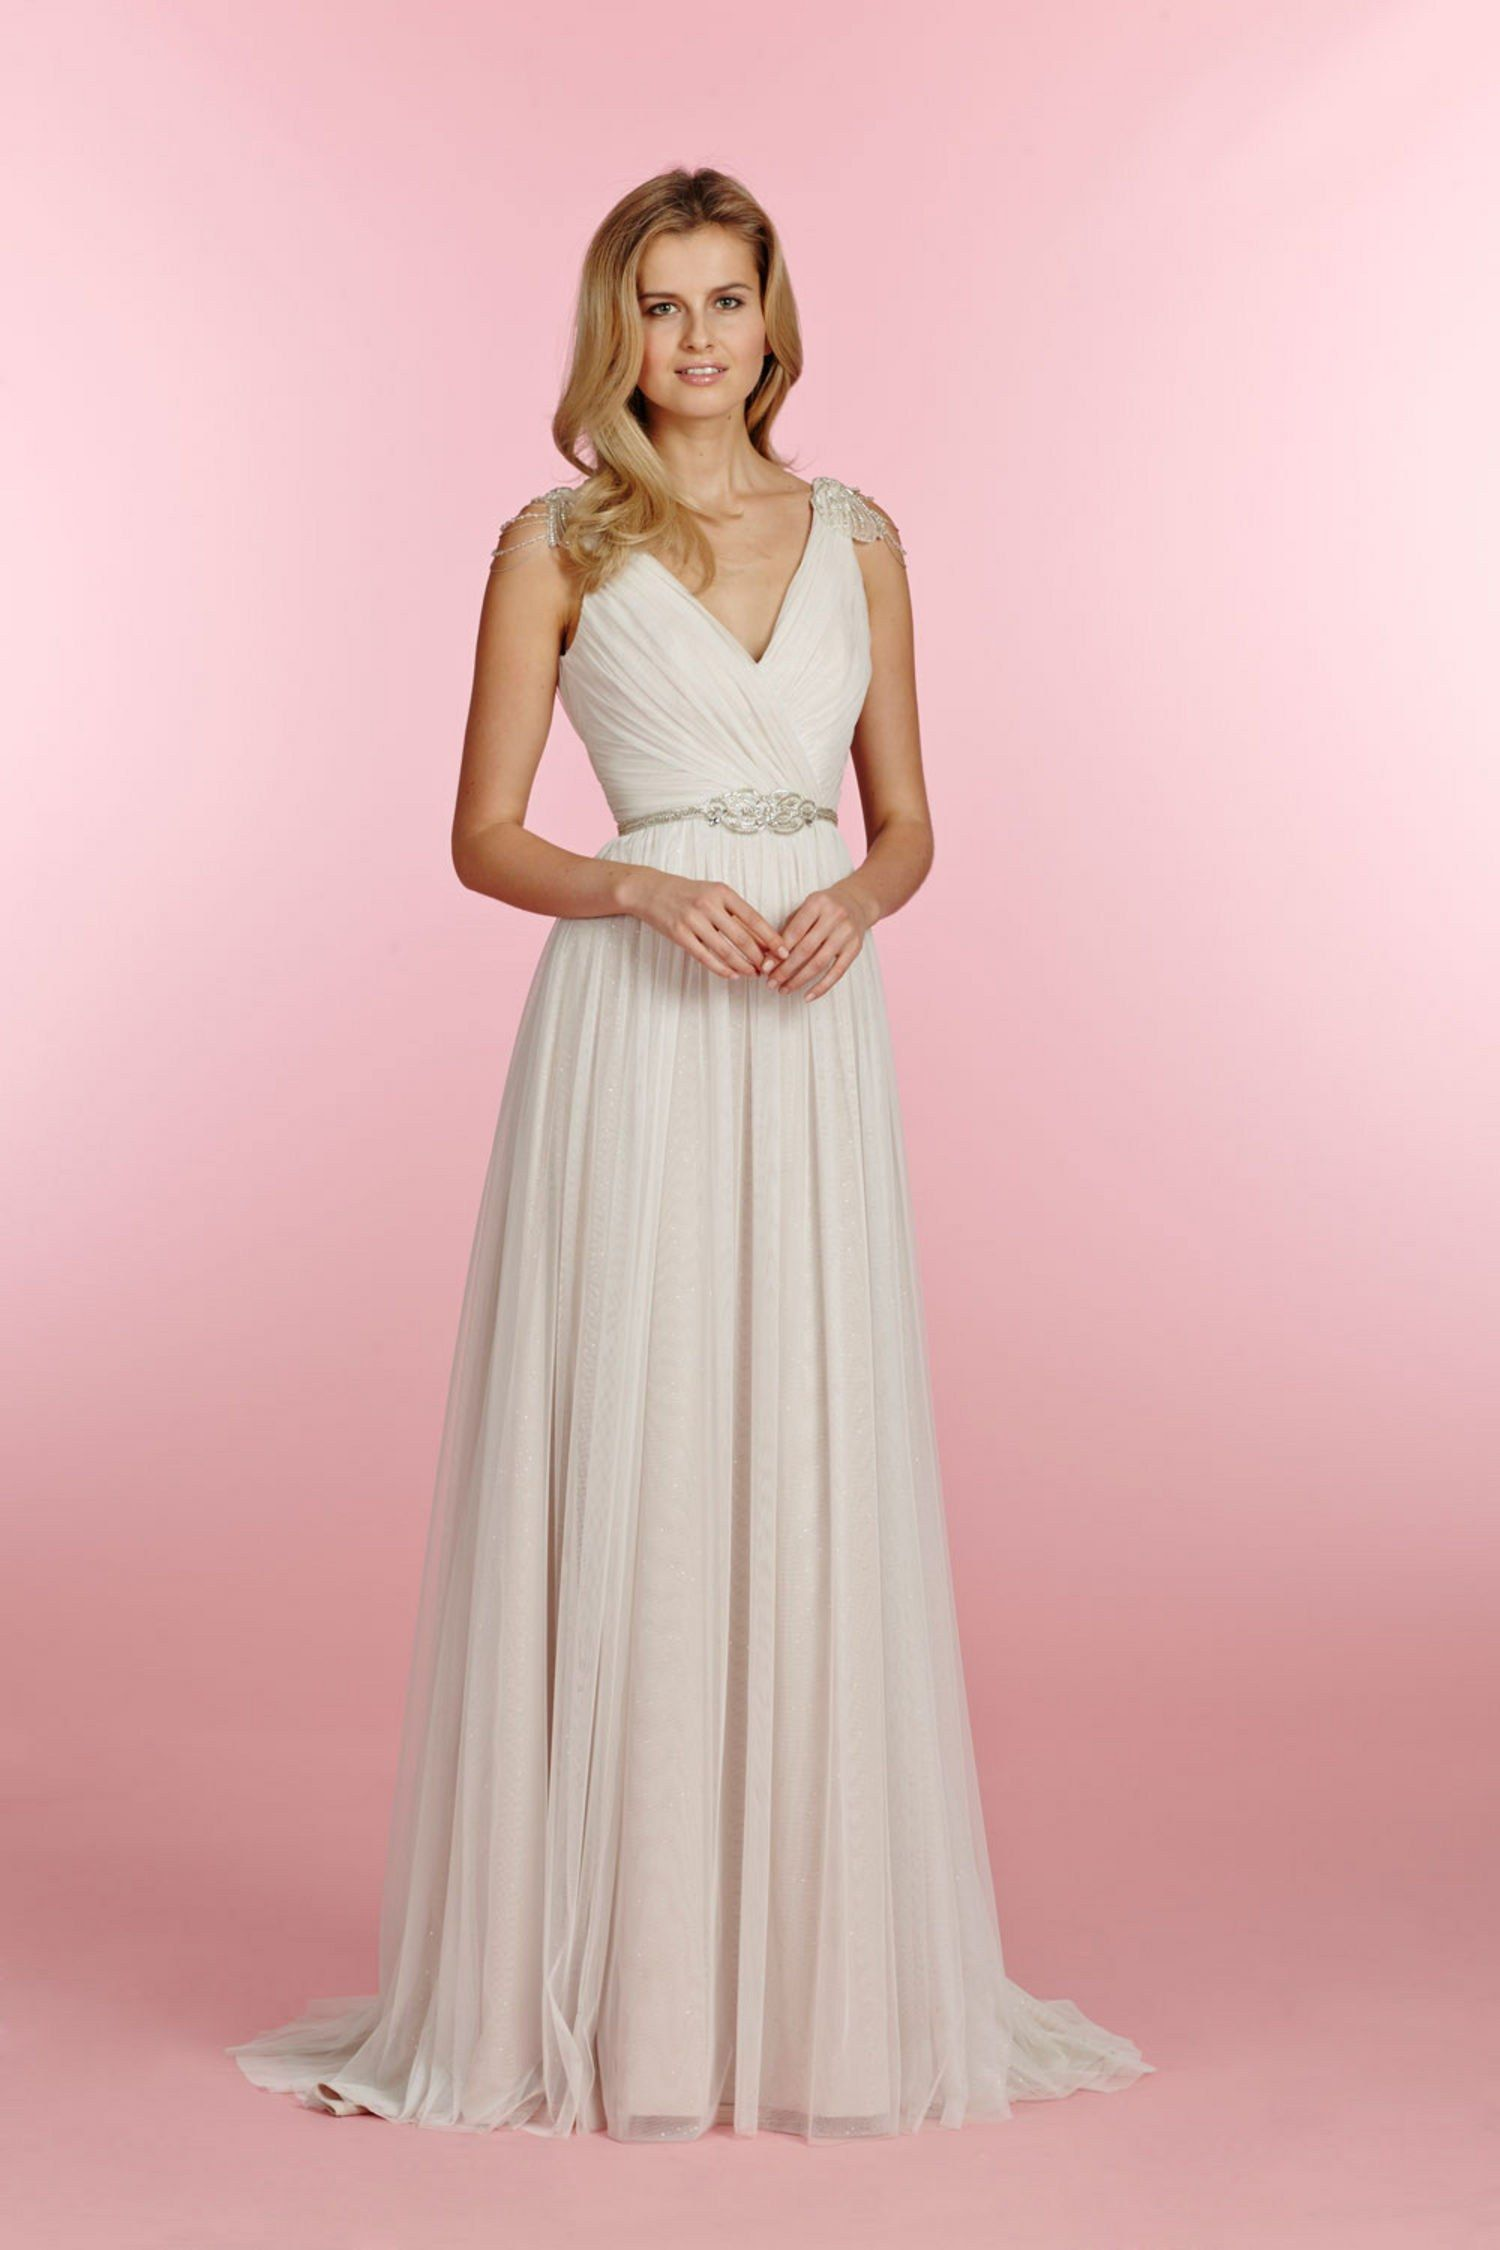 Fall in Love: 62 Brand-New Wedding Dresses to Swoon Over | Wedding ...